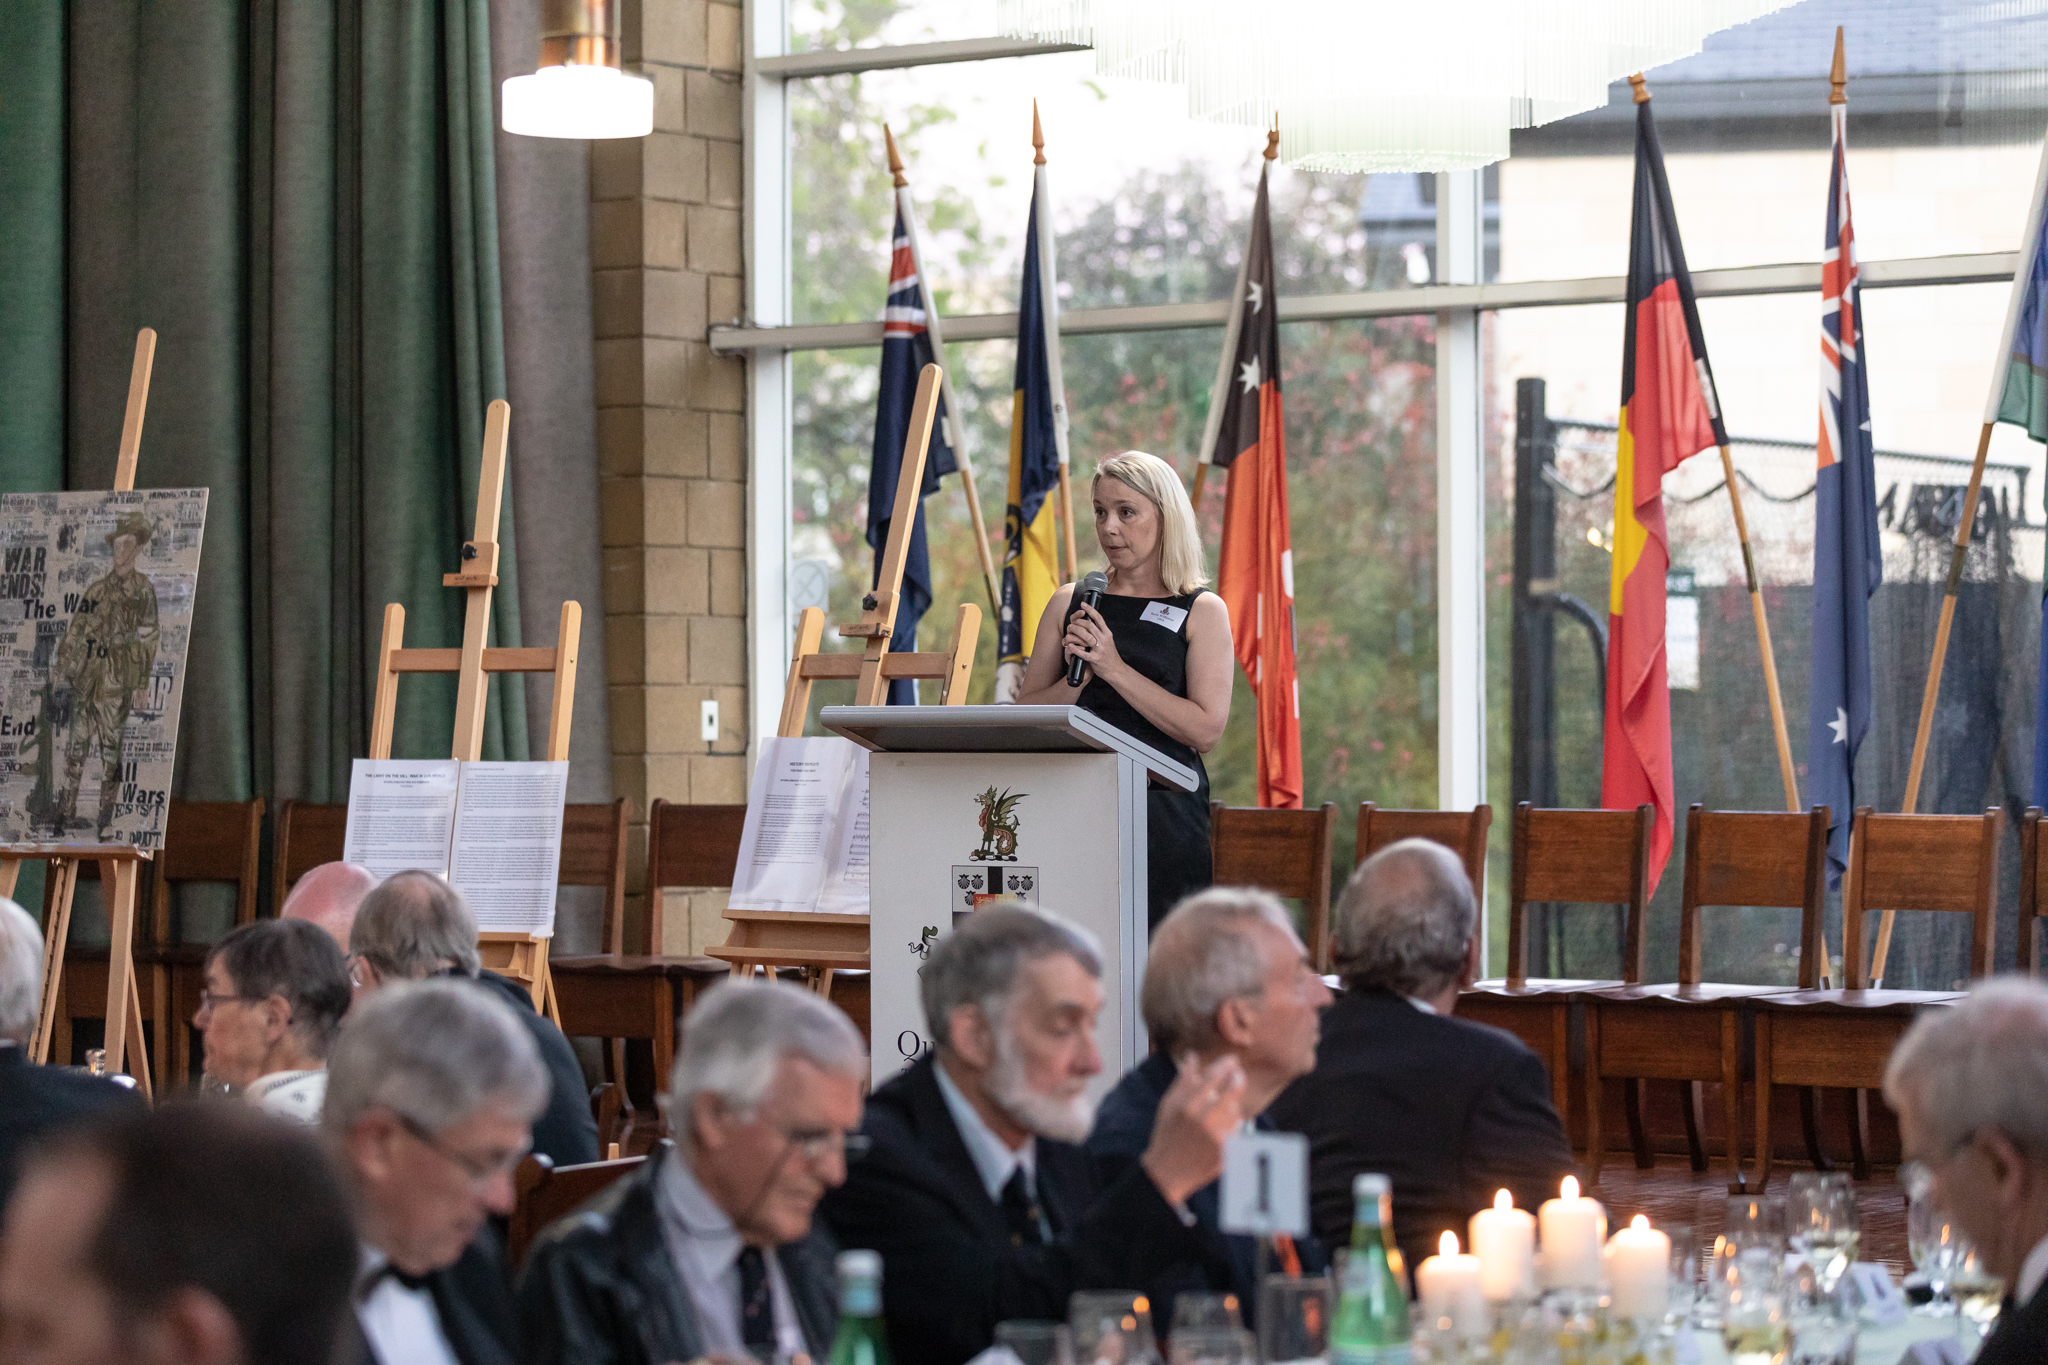 Dr Katy Williams introduces the Armistice Prize at the Wyvern Dinner